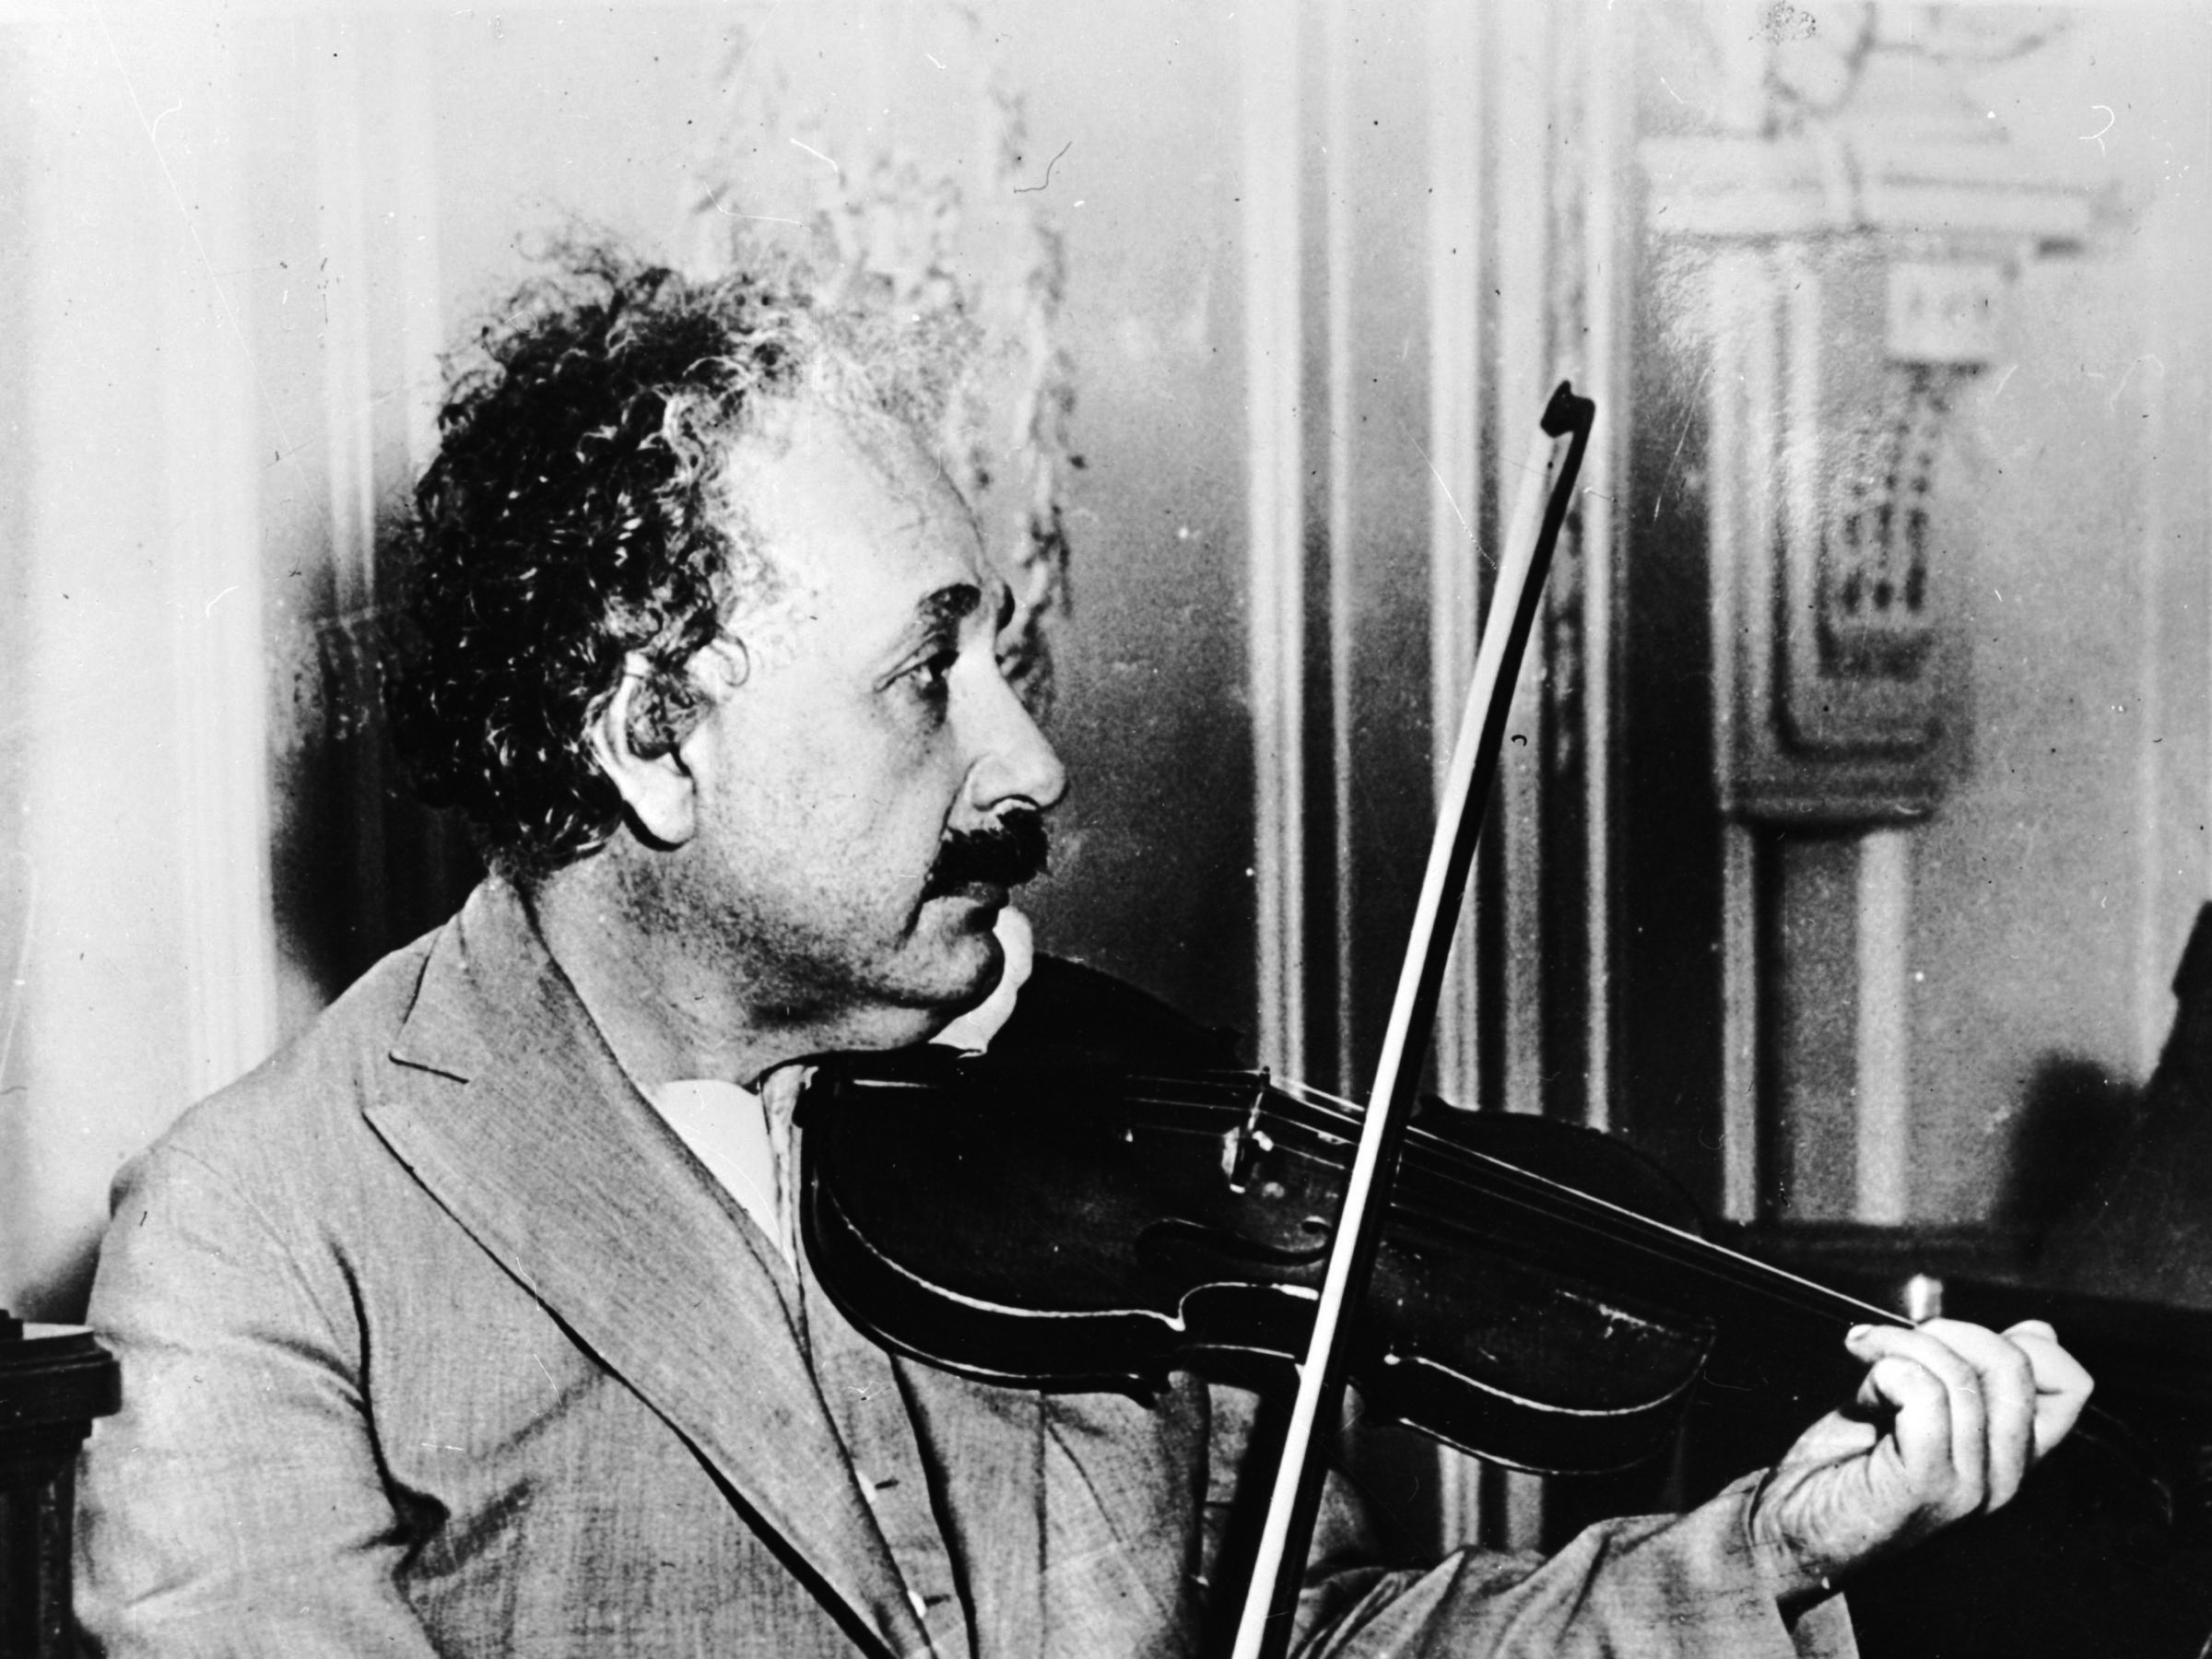 Fingers to the strings, on board ship from New York to San Diego, 1900. Einstein formed musical friendships wherever he went, often playing with other scientists. He claimed he owed some of his best ideas to the inspiration of his violin